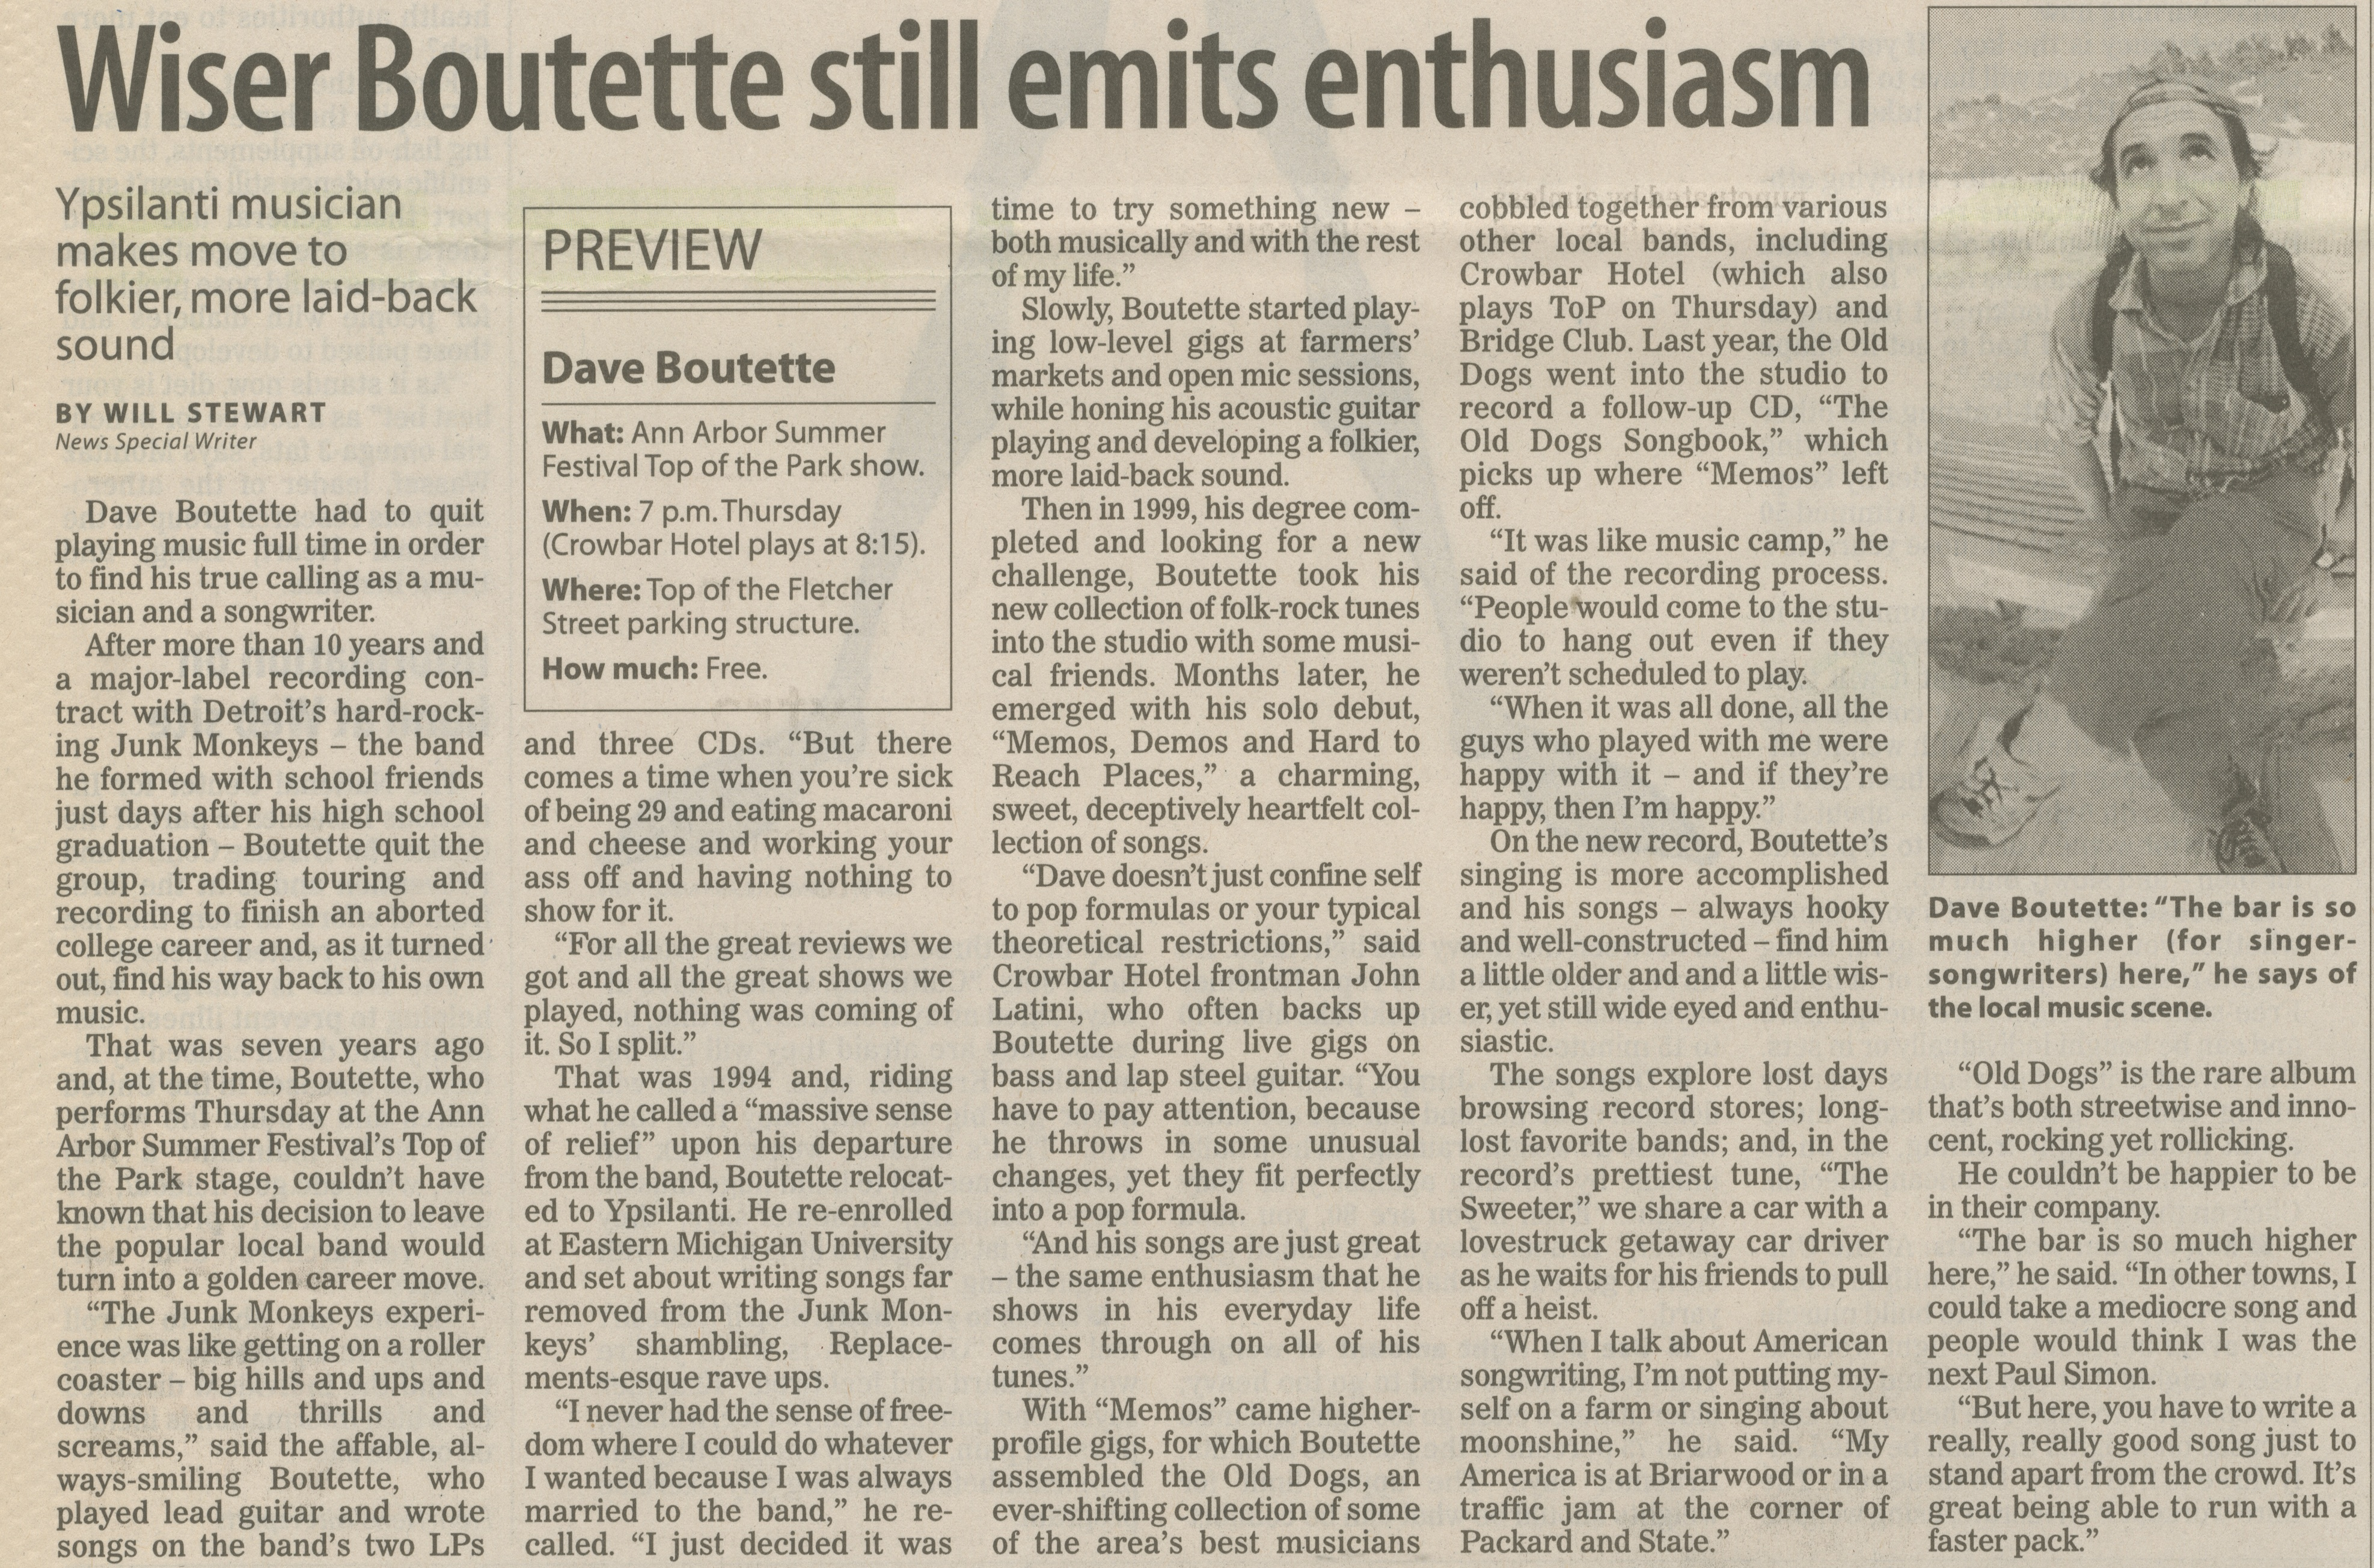 Wiser Boutette still emits enthusiasm image